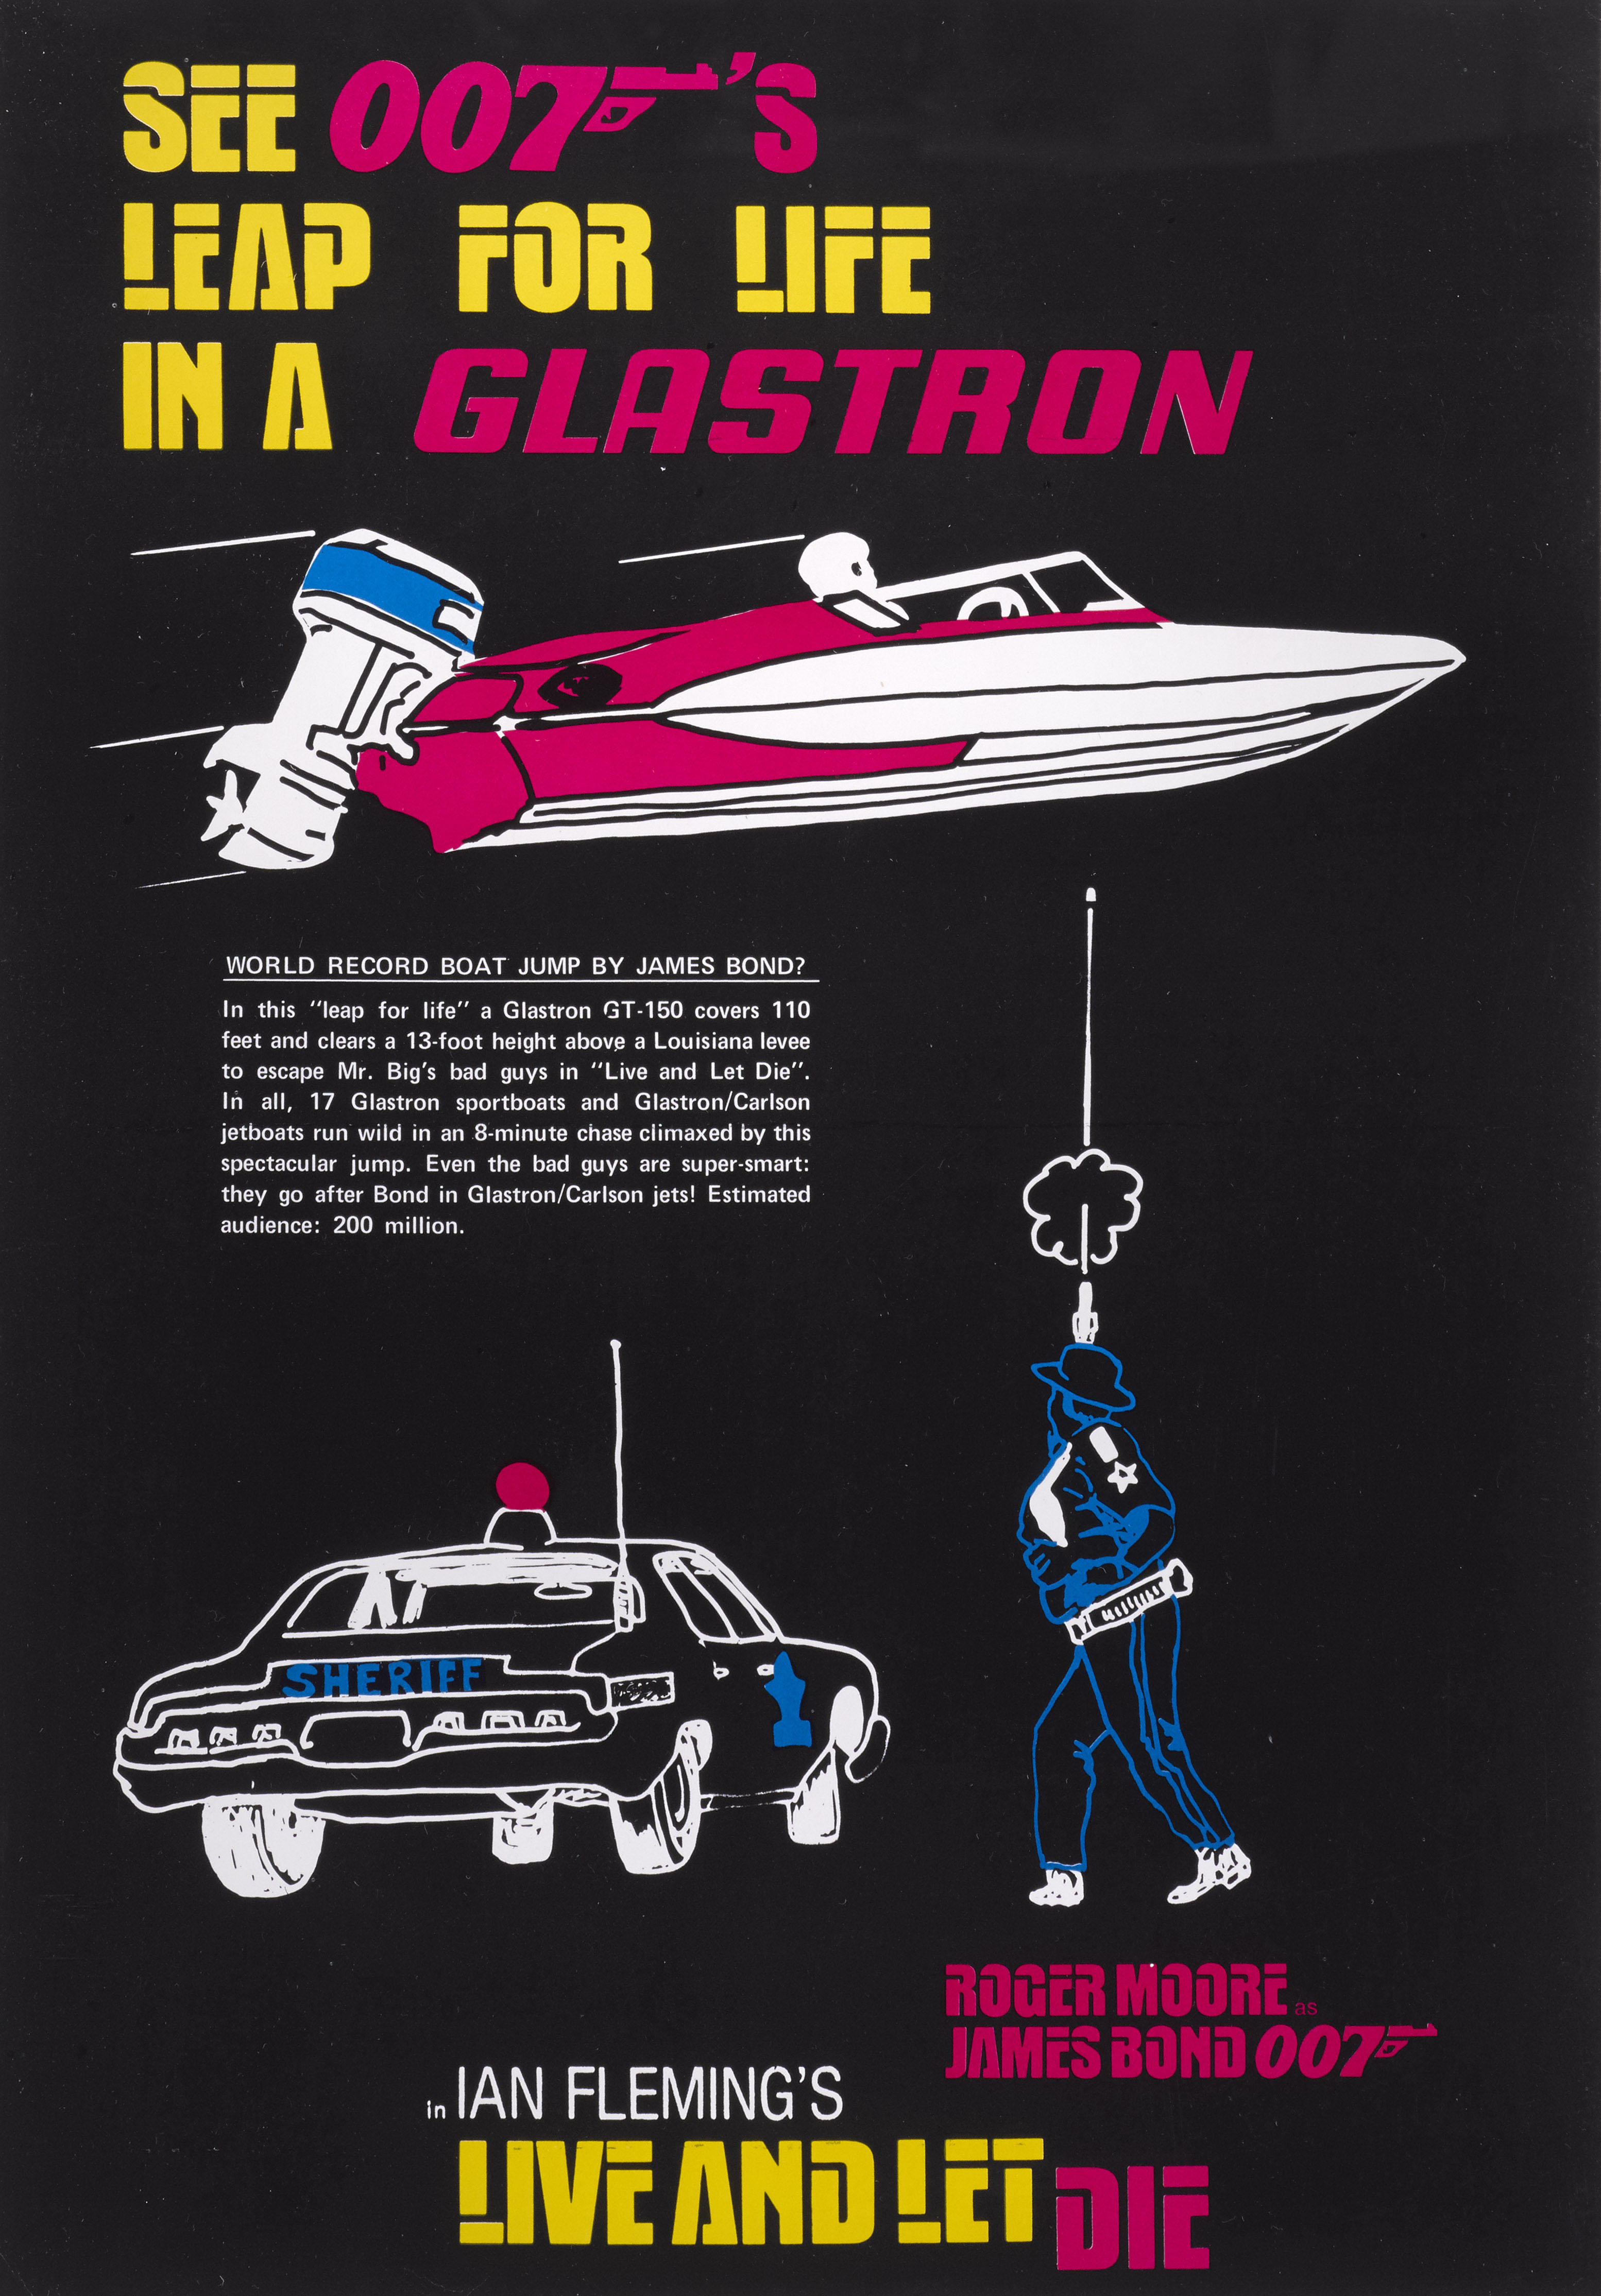 LIVE AND LET DIE (1973) POSTER, US, TIE-IN WITH GLASTRON (BOAT MANUFACTURERS)